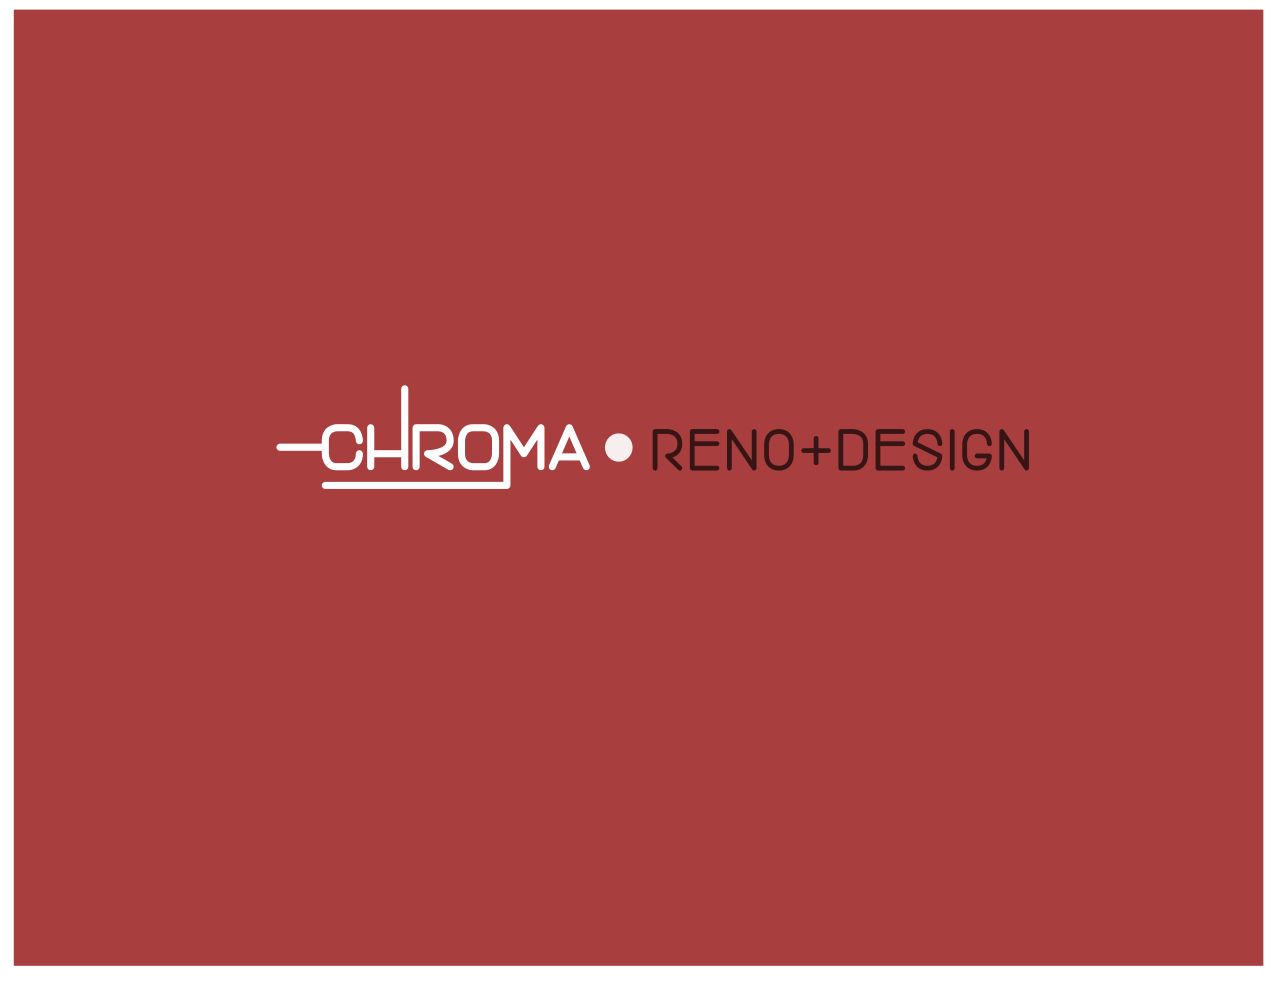 Logo Design by JaroslavProcka - Entry No. 318 in the Logo Design Contest Inspiring Logo Design for Chroma Reno+Design.